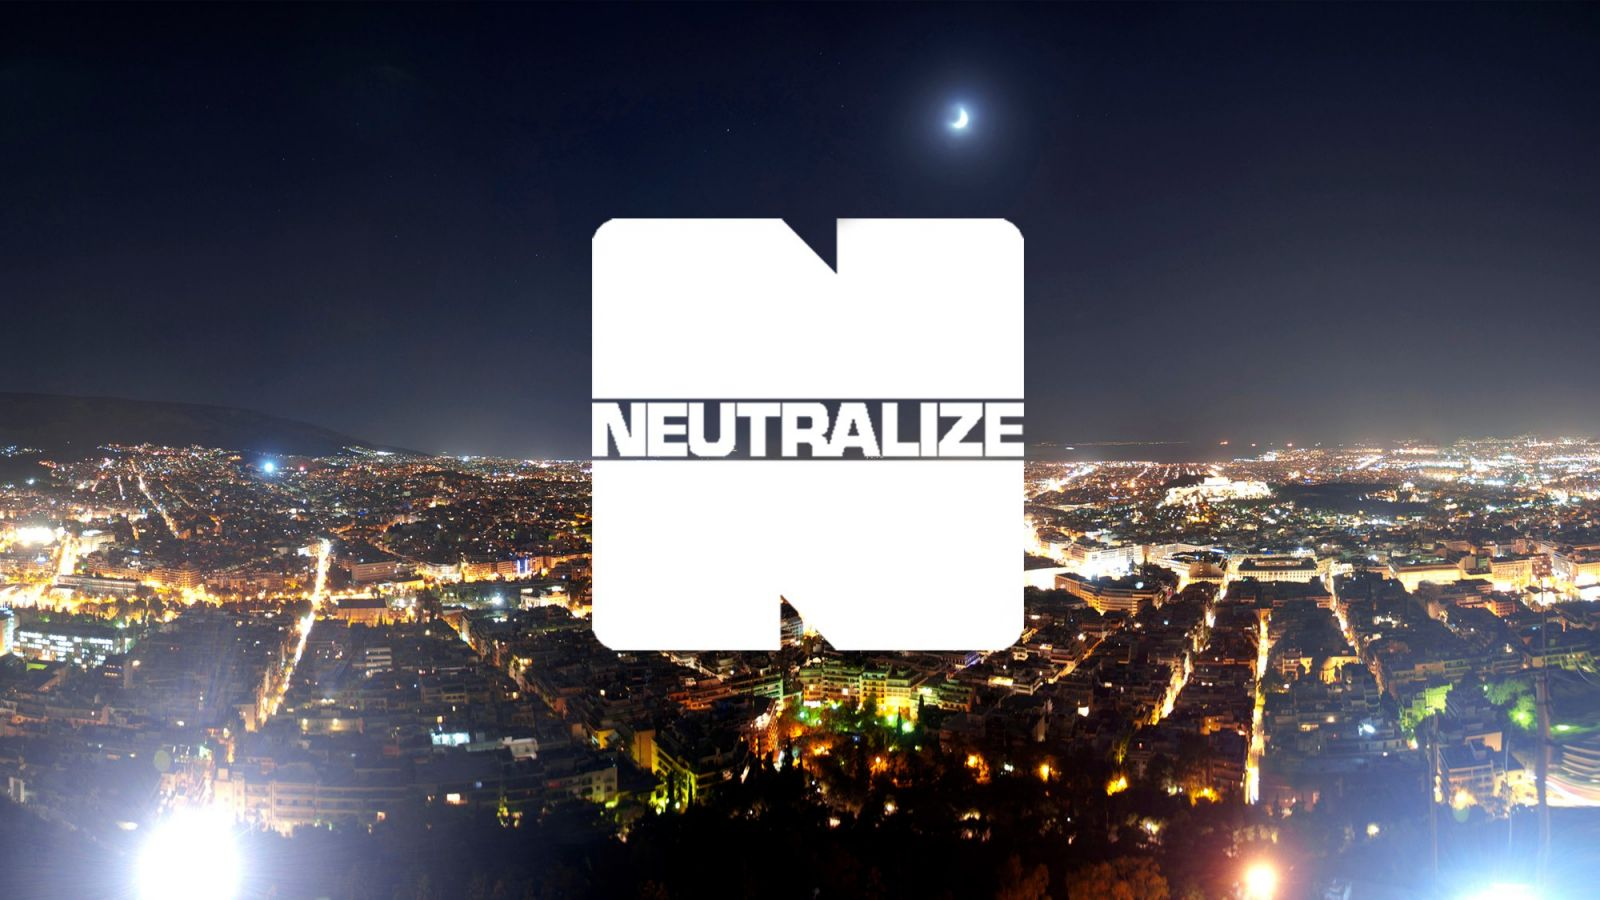 Neutralize - Dreamtime EDM - Top 20